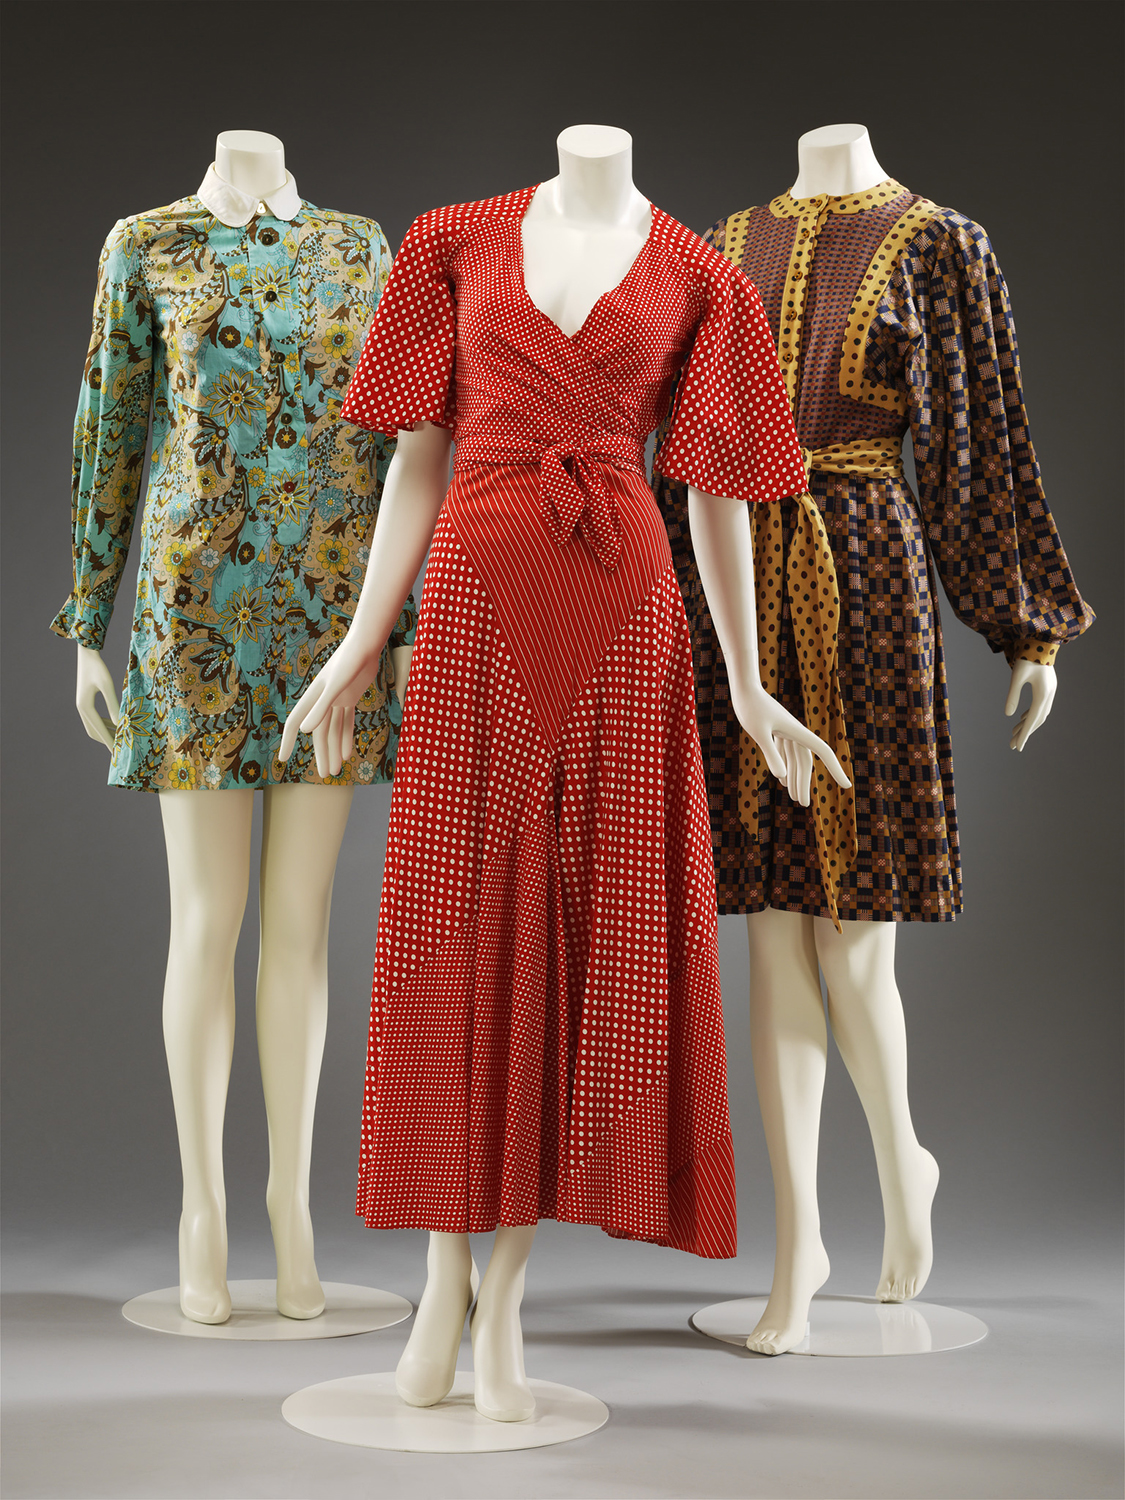 Three patterned ensembles, Mary Quant, 1964 – 1971, London. Museum no. T.22-2013,T.498-1993 & PROV.6-2018. © Victoria and Albert Museum, London